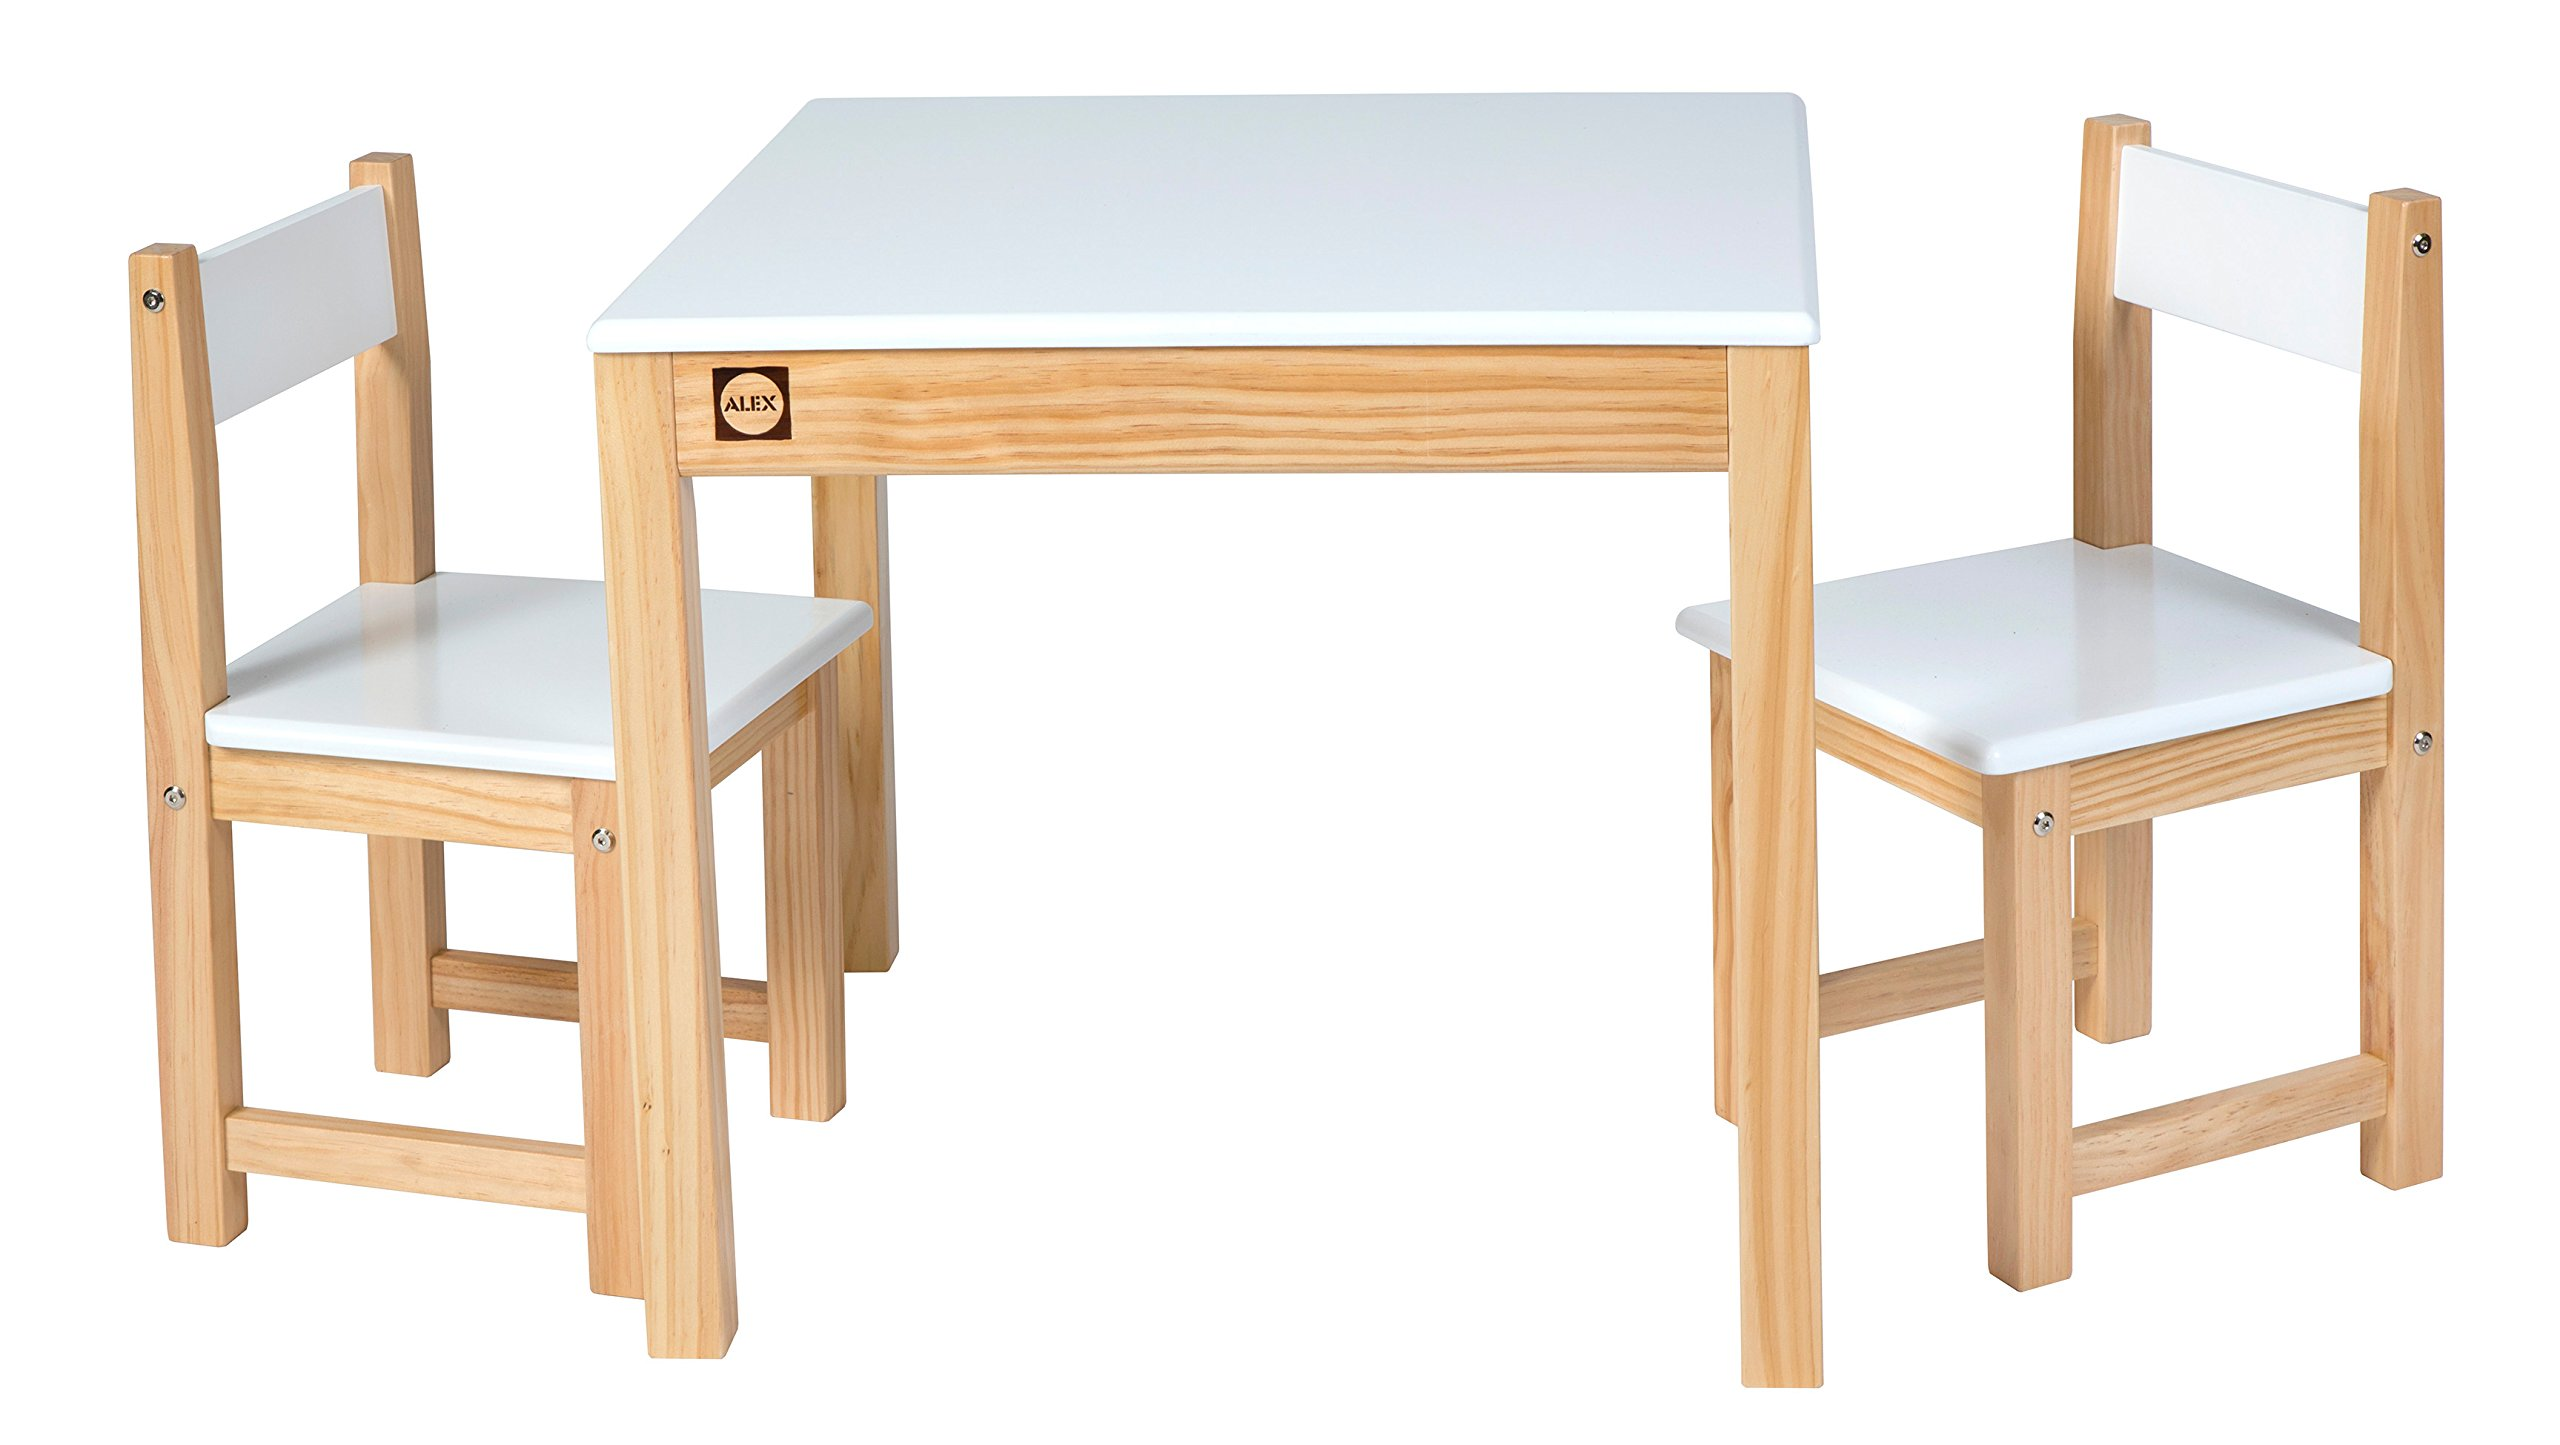 ALEX Toys Artist Studio Wooden Table and Chair Set White